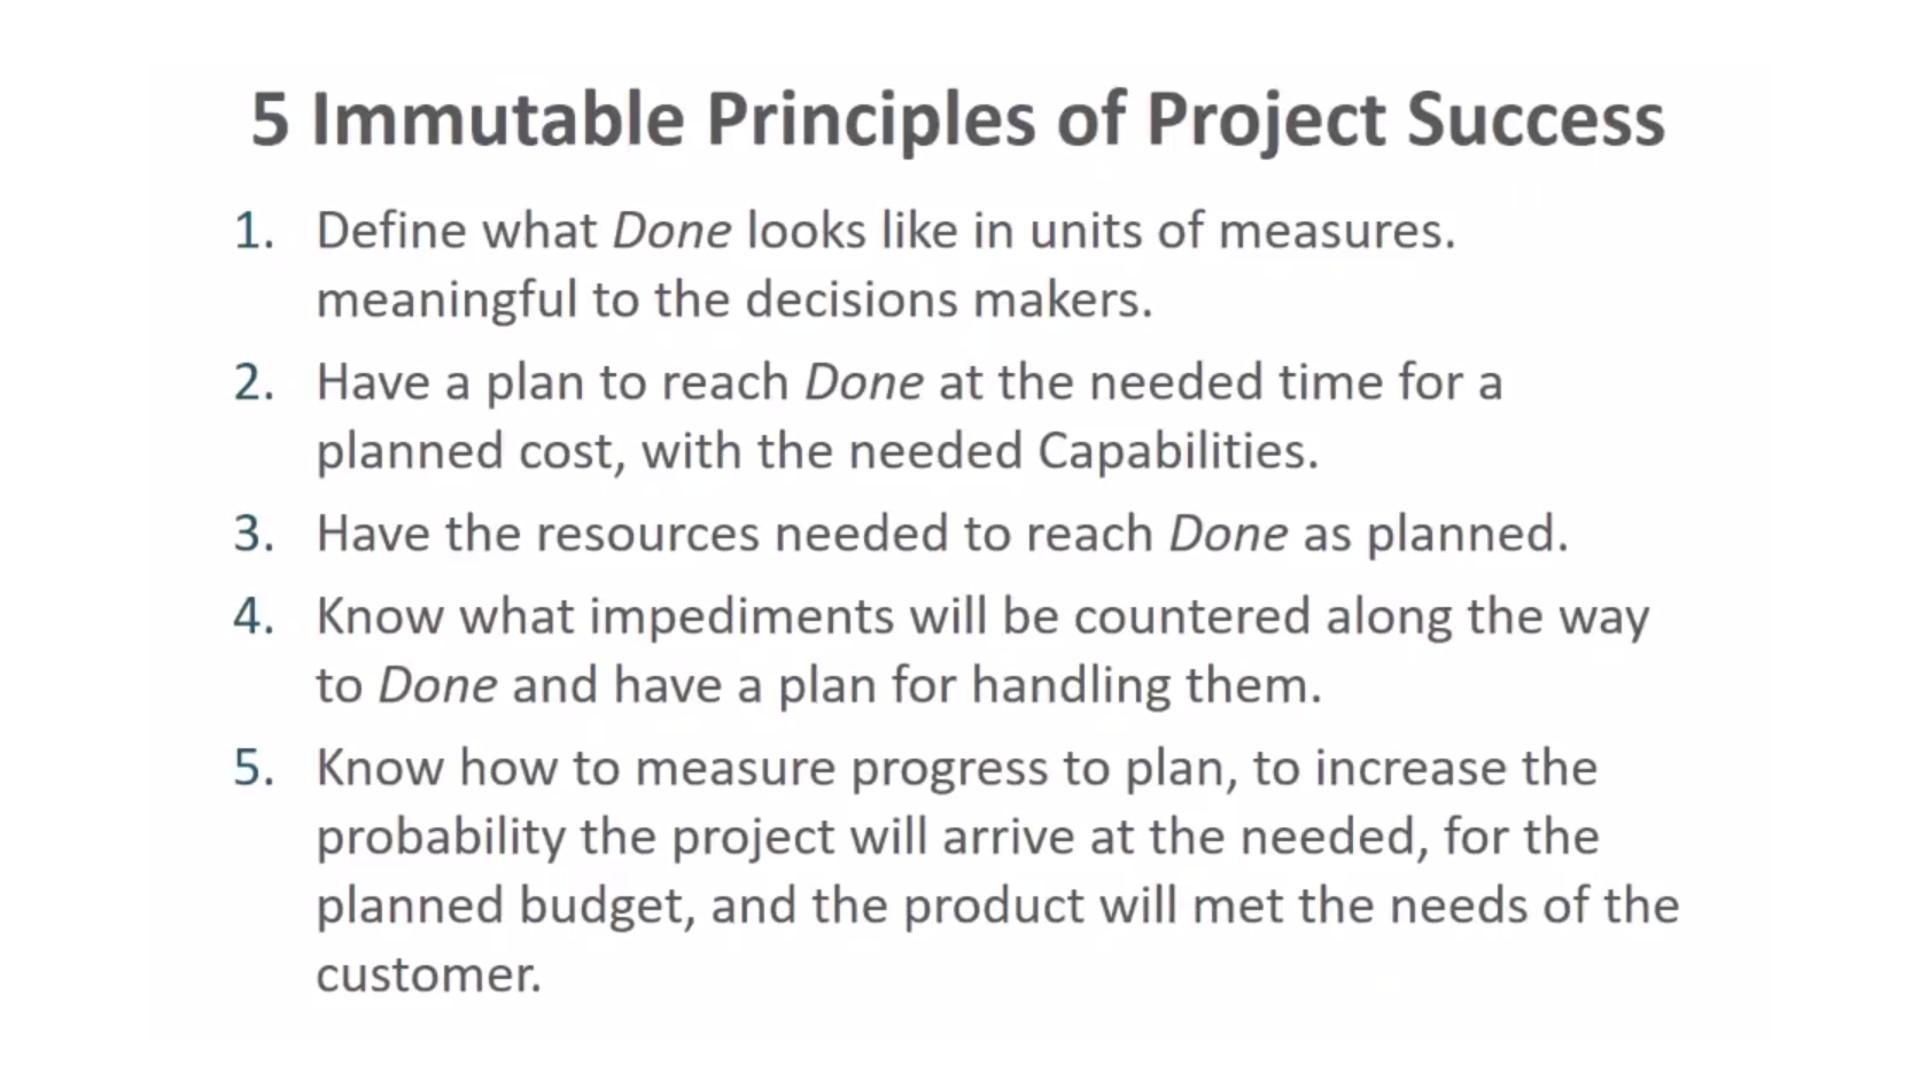 Five Immutable Principles of Project Success